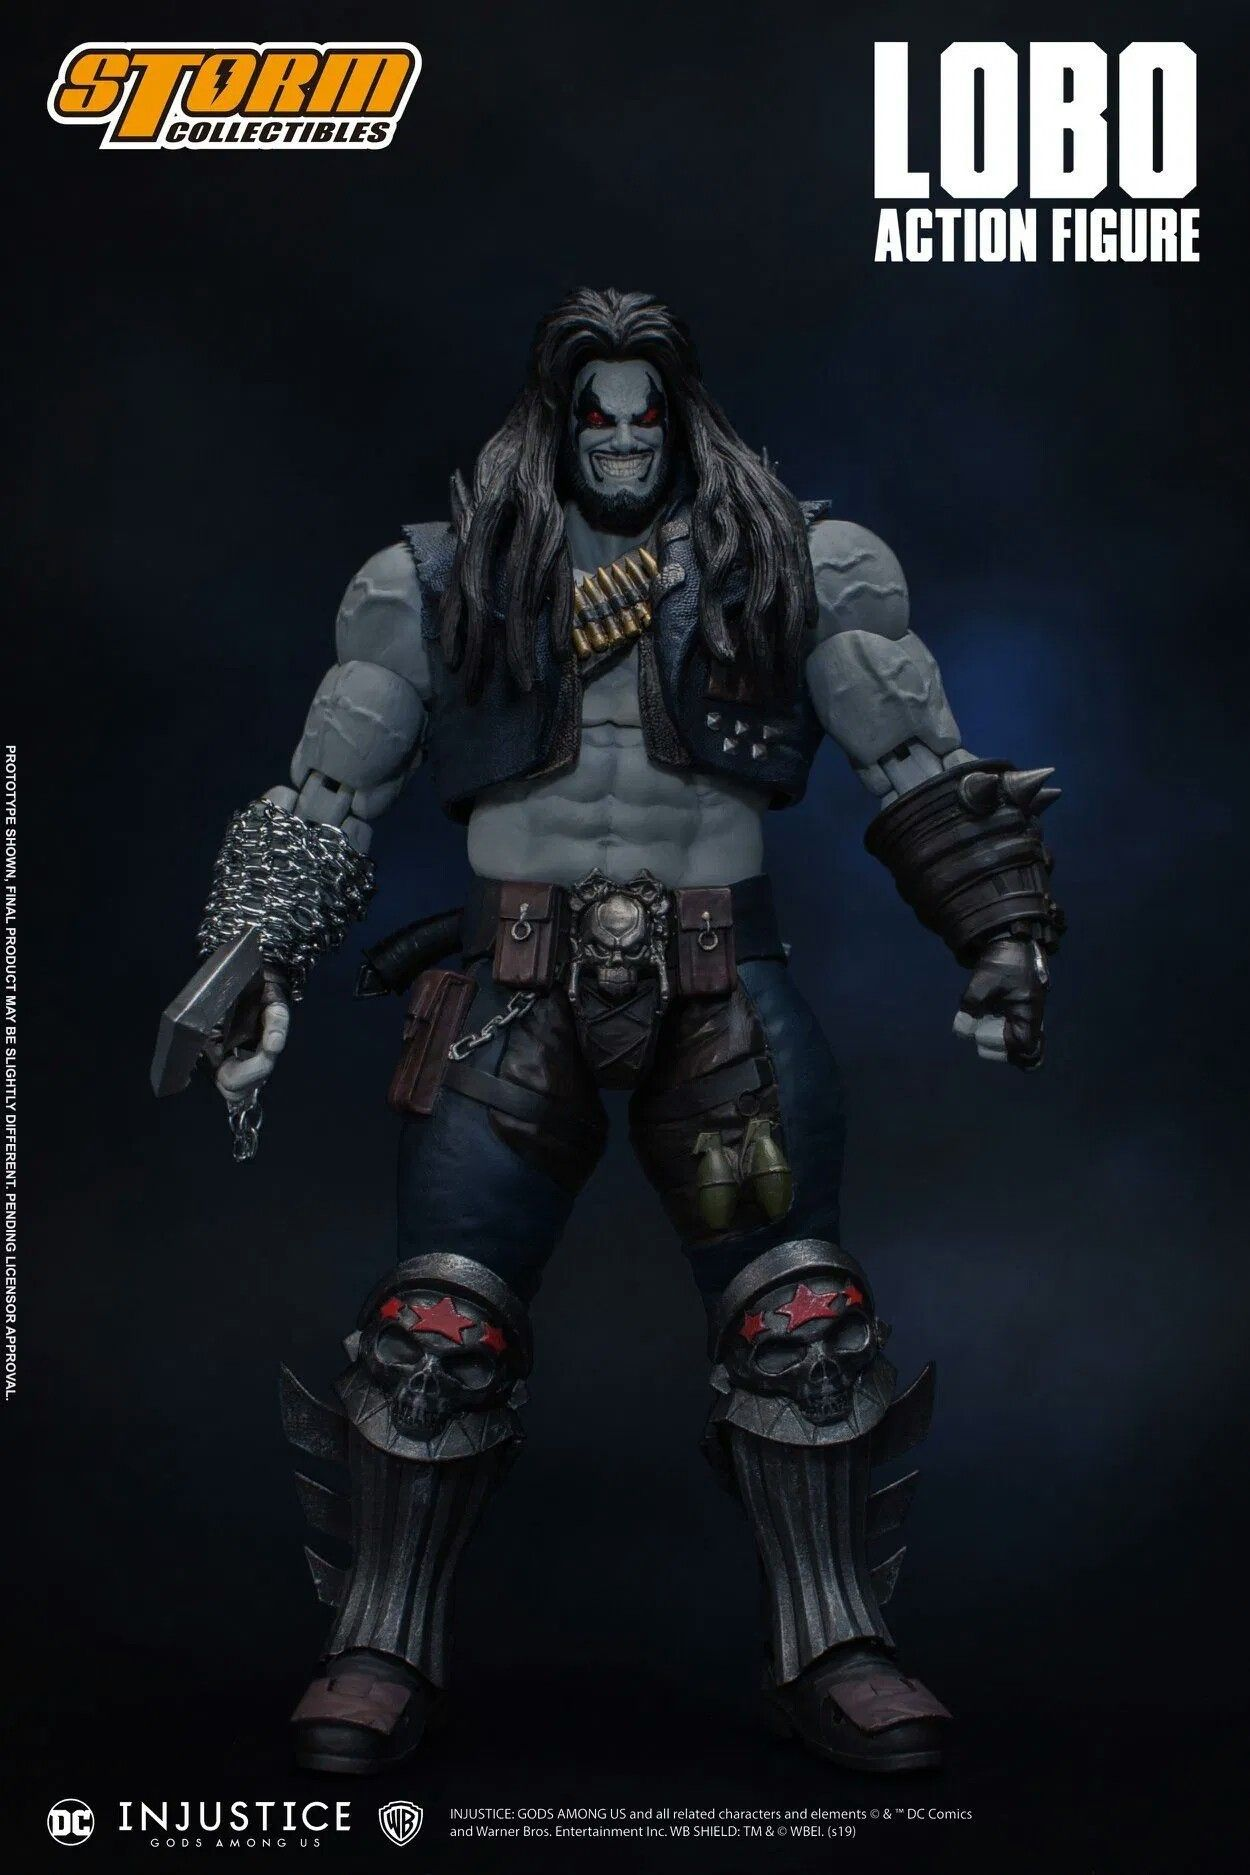 Storm Collectibles Is Bringing Us An Injustice Lobo That Any Fan Of The Main Man Is Going To Want The New 1 12 Scale Lo Injustice Action Figures Dc Injustice